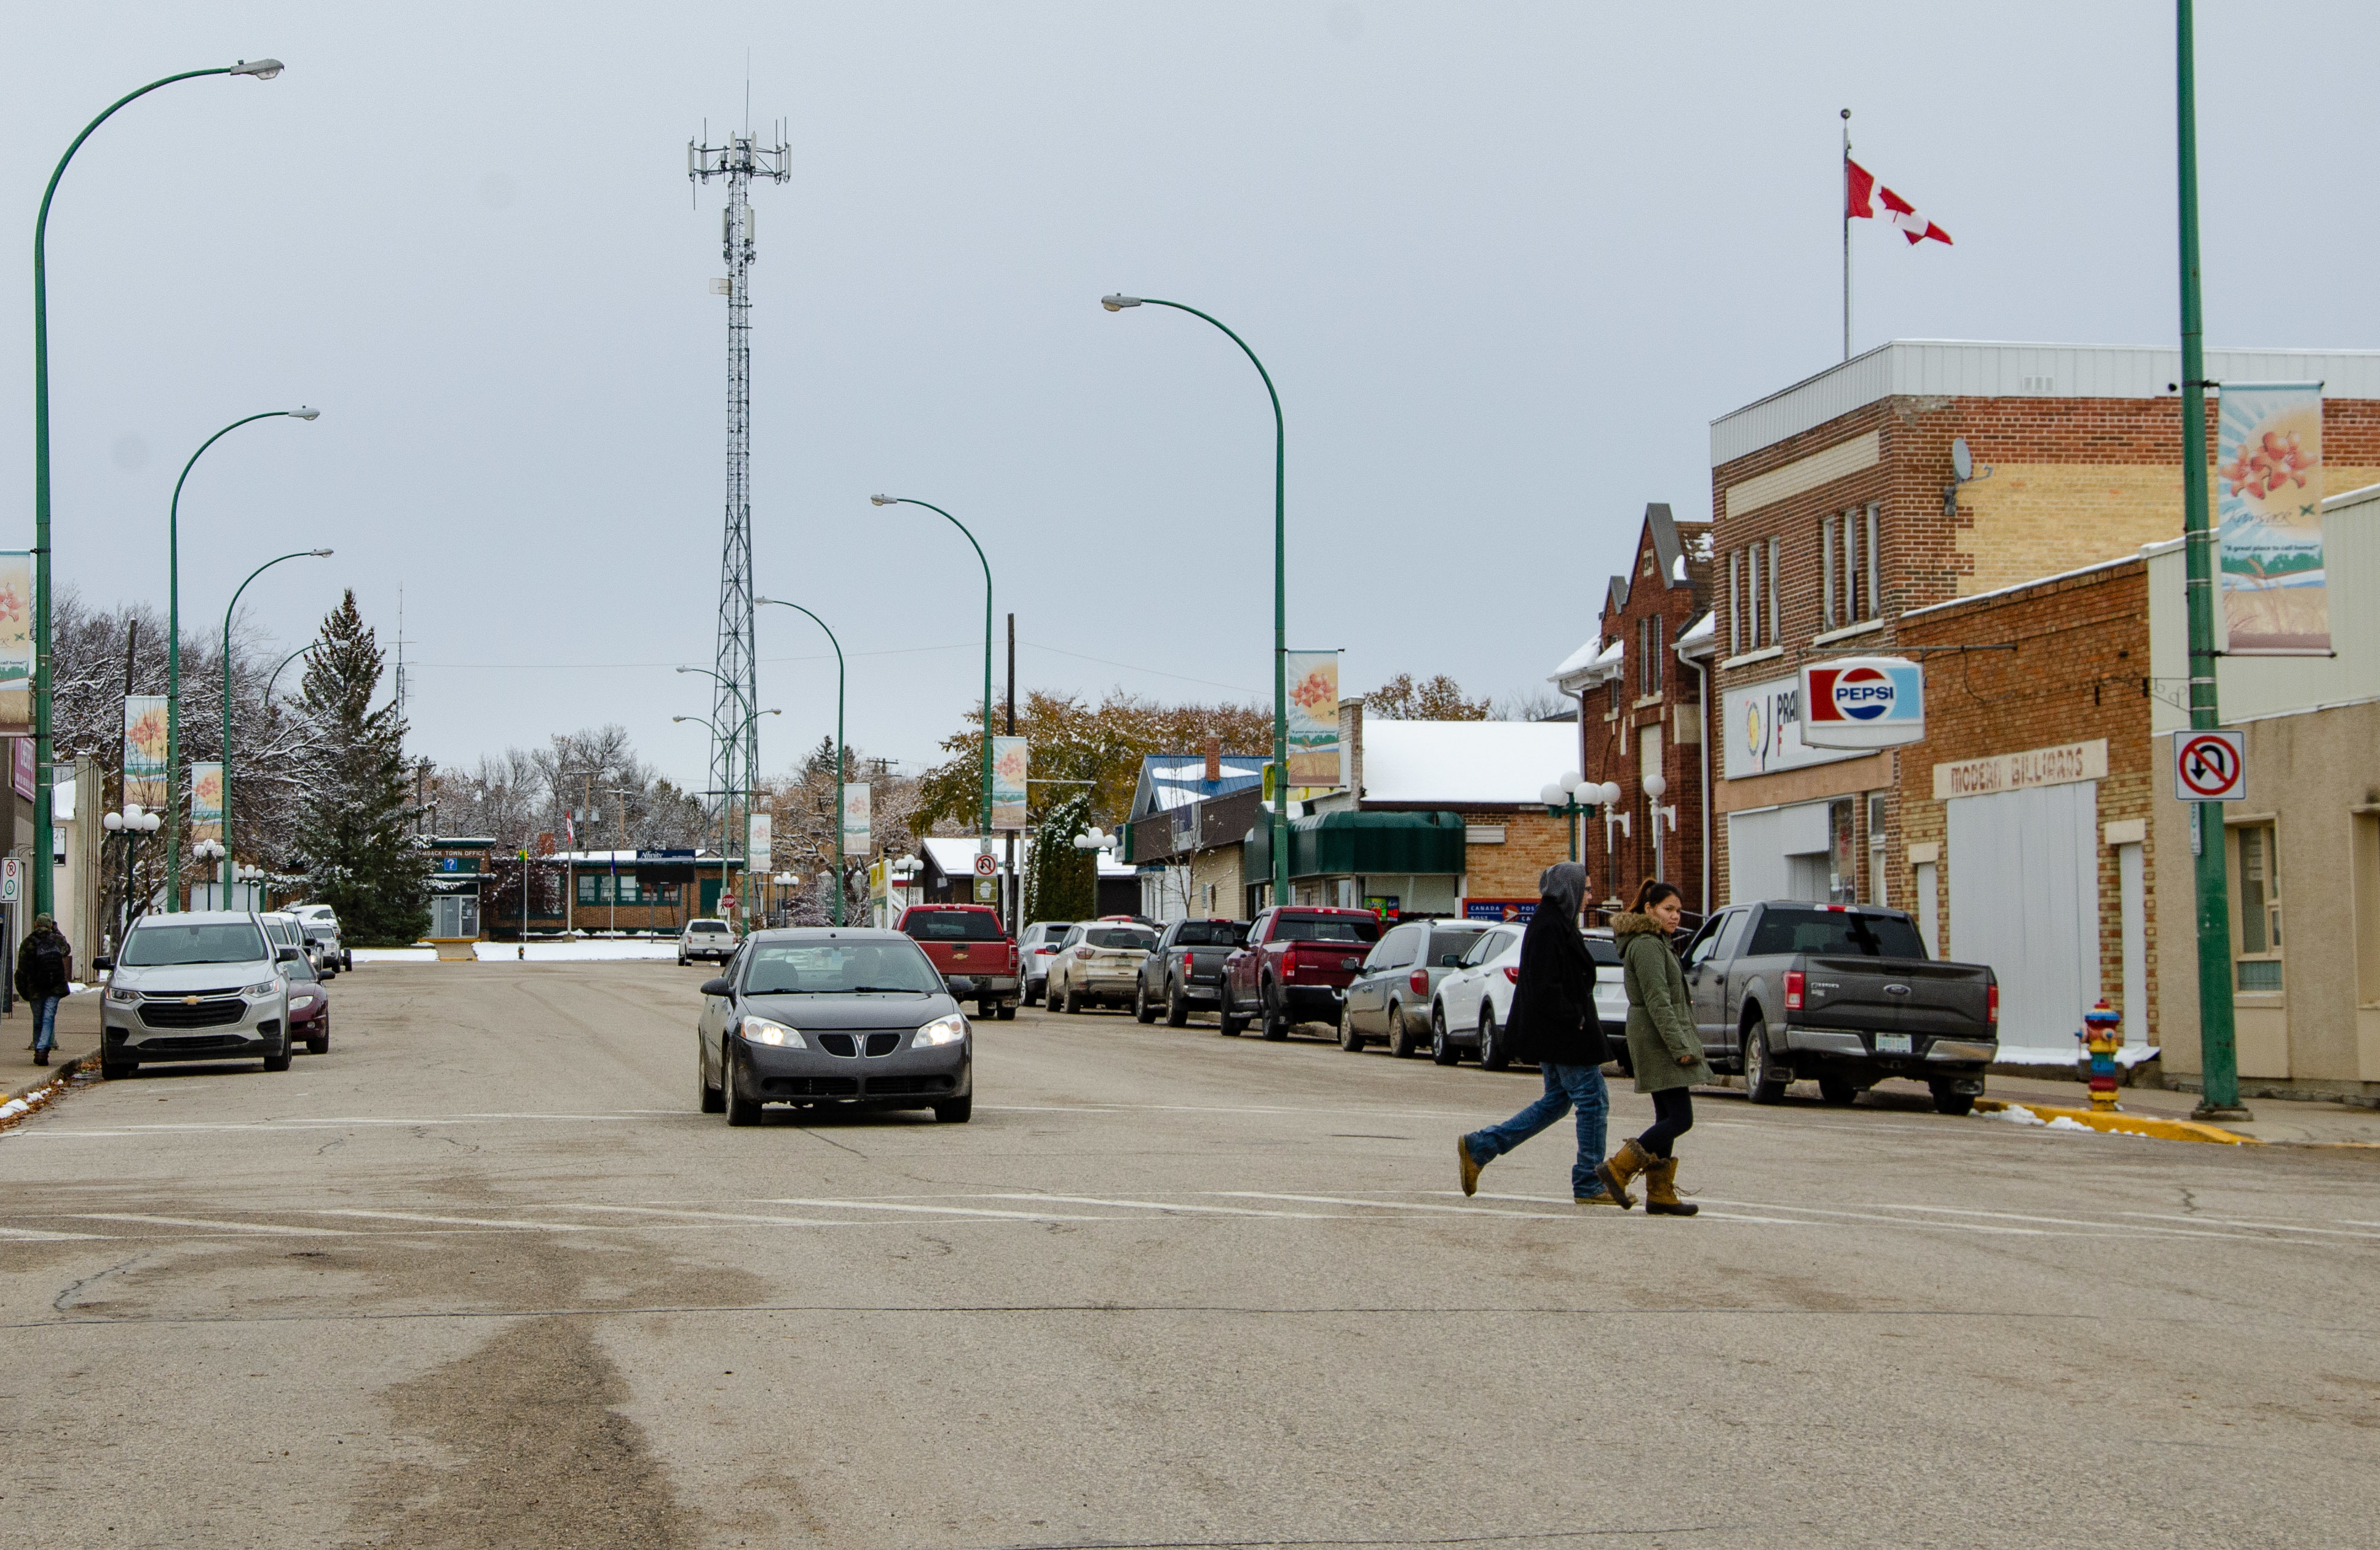 Many businesses are closed or boarded up and several homes are listed for sale in Kamsack.